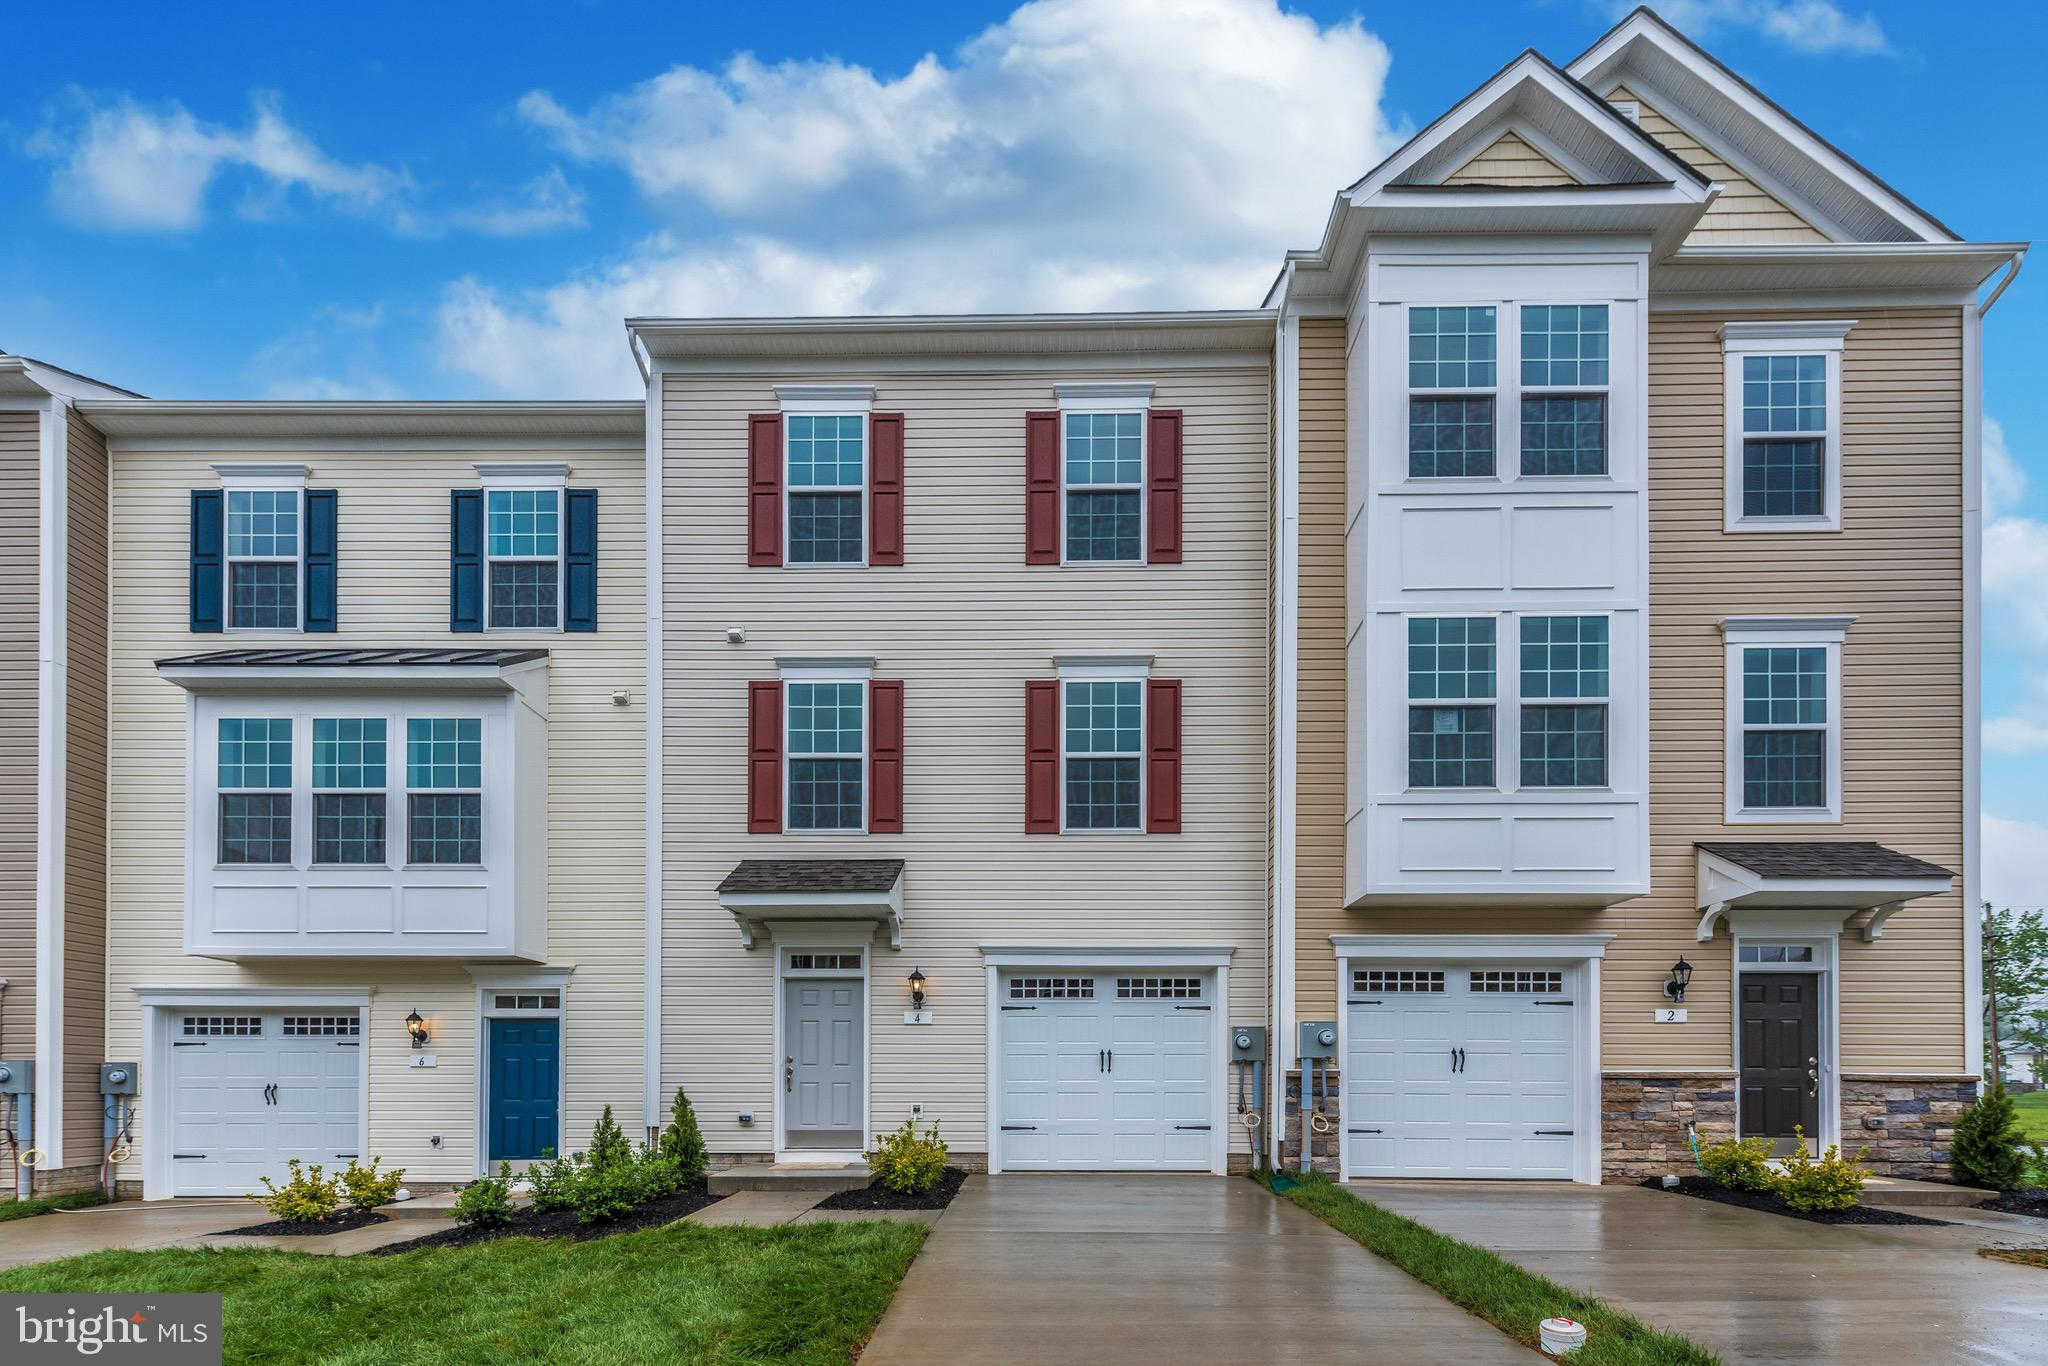 121 Park Lane, Thurmont, MD 21788 now has a new price of $259,365!